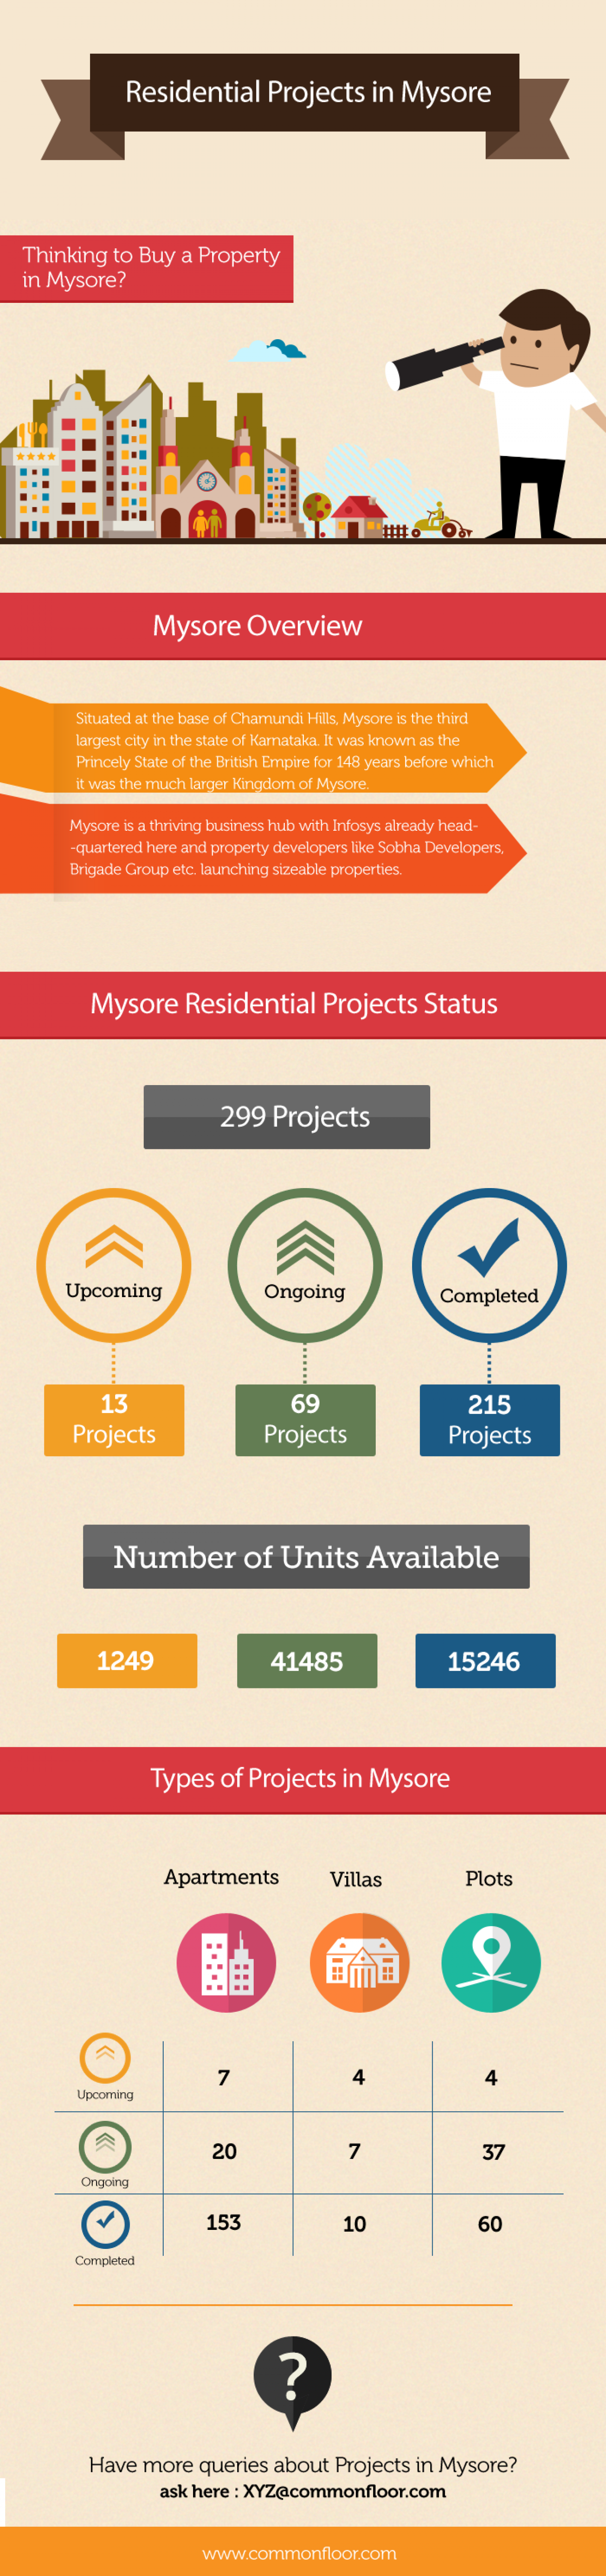 Residential Projects in Mysore Infographic